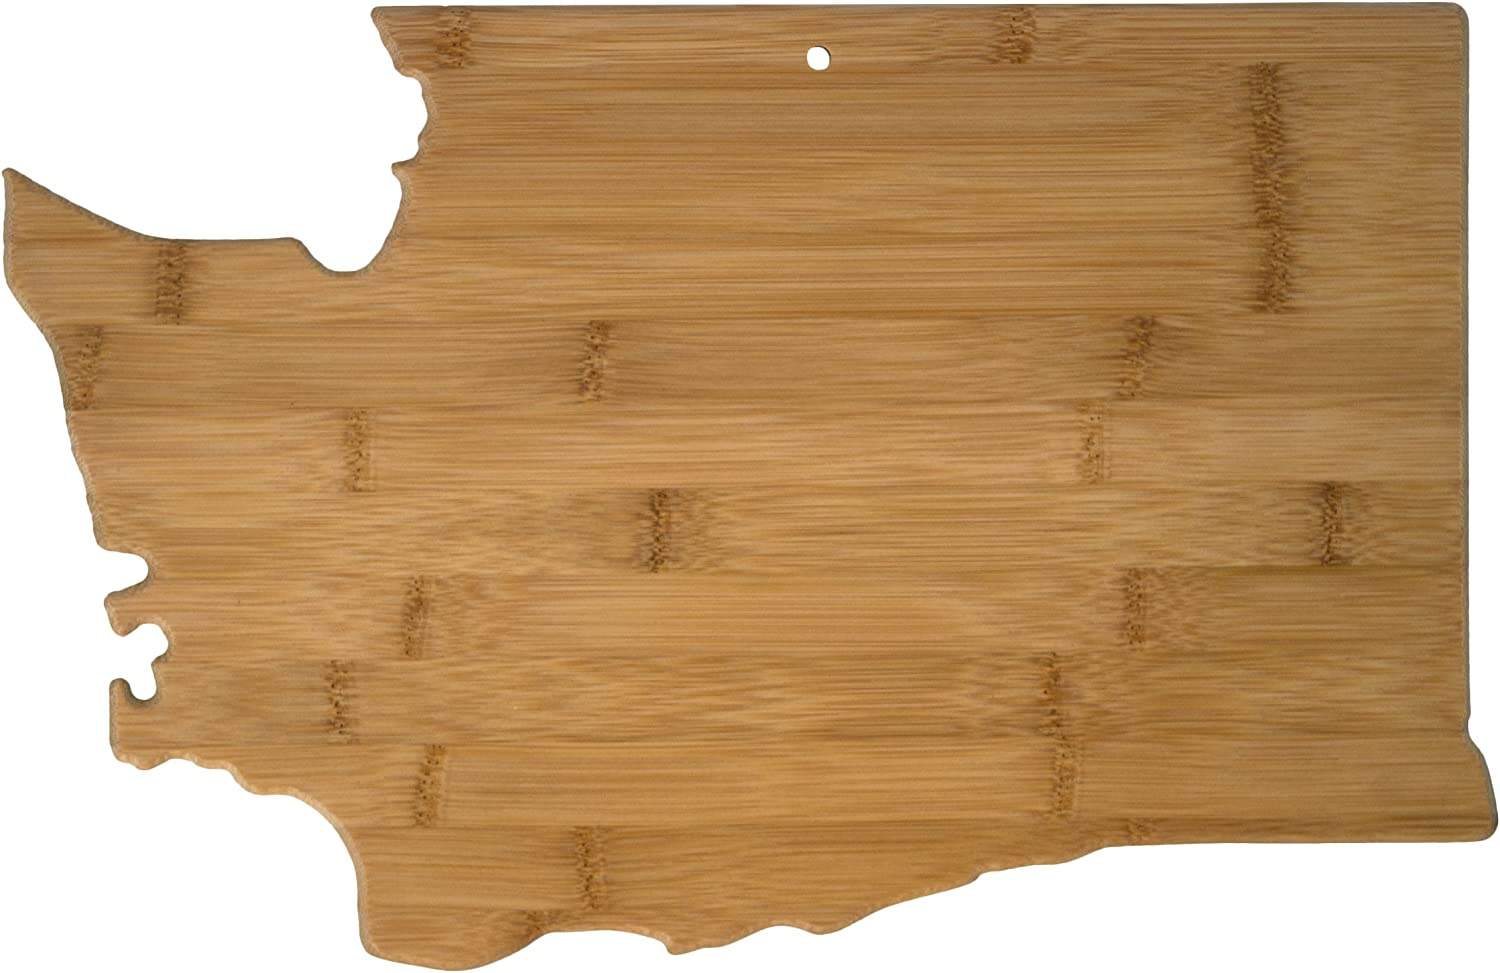 Totally Bamboo 20-7986WA State Cutting & Serving, Washington, Made From 100% Organic Extremely Strong & Durable Multi Functional Bamboo Cutting board for Cooking, Entertaining, Decor